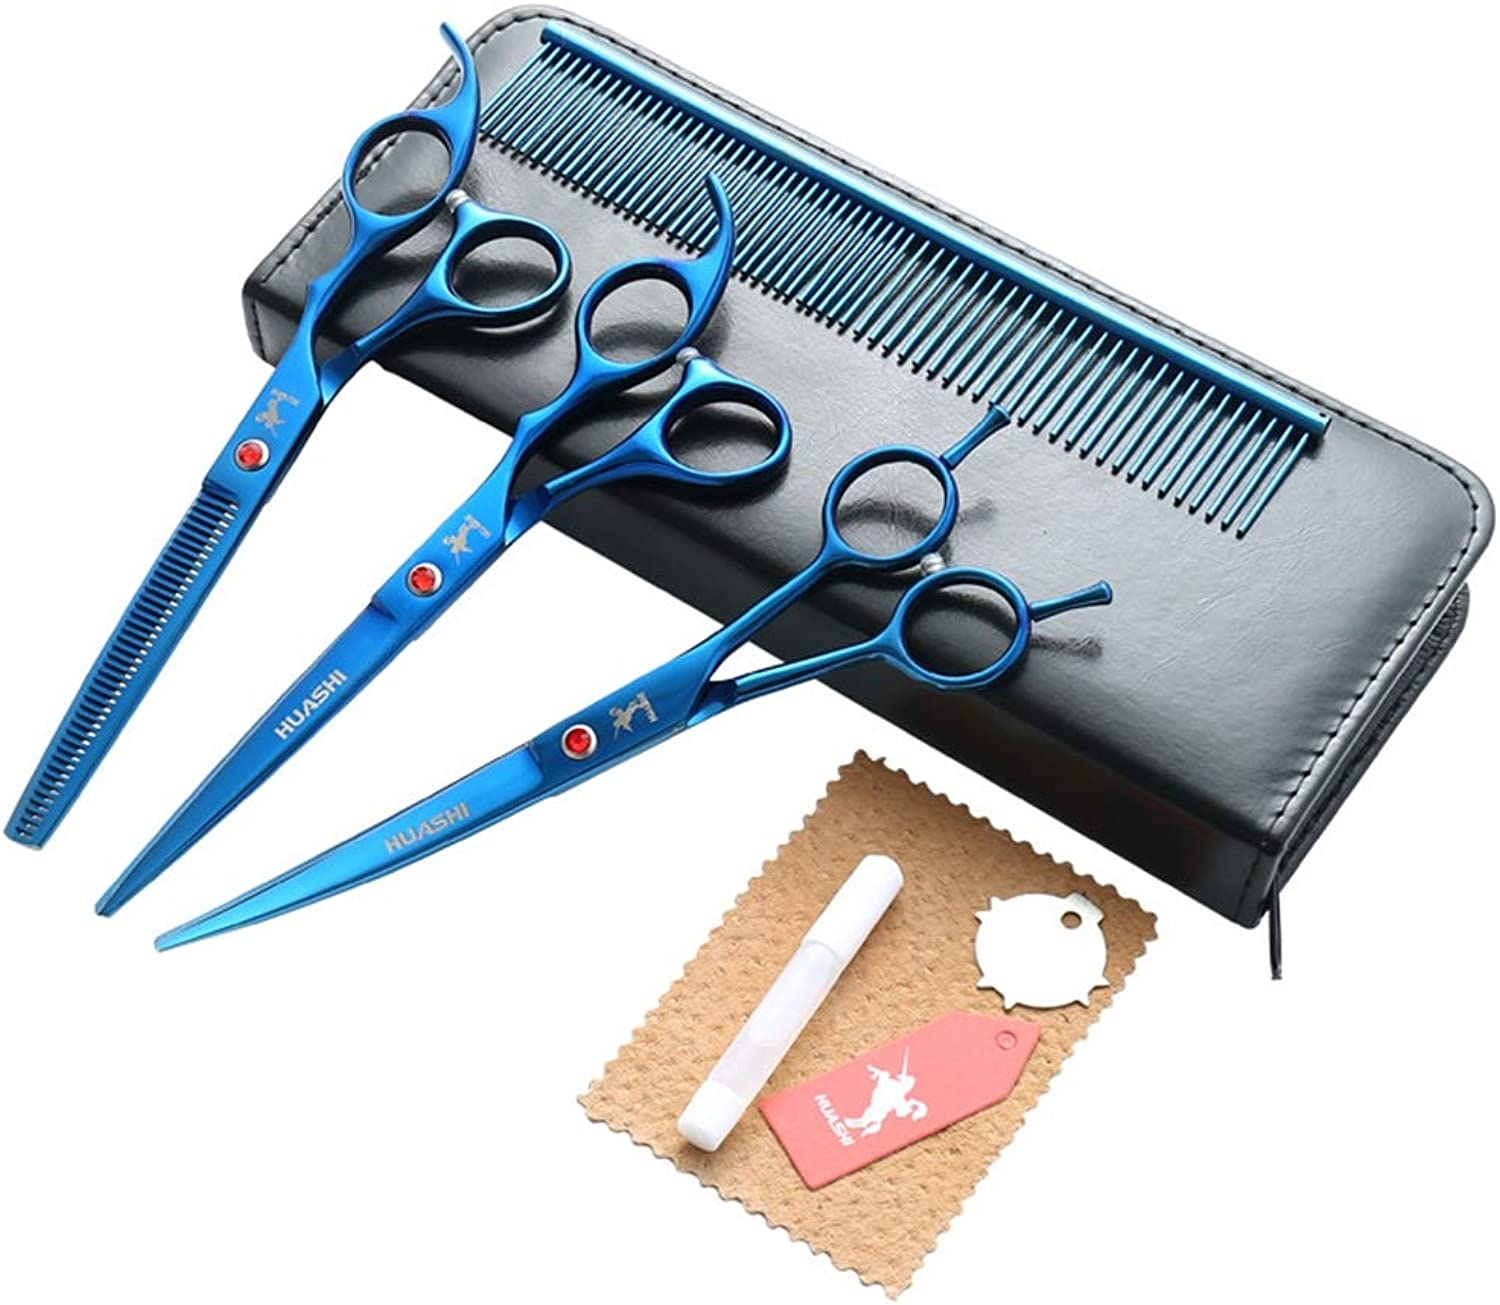 Dog Grooming Scissors Stainless Steel Cutting Thinning Curved Shears with Pet Grooming Comb Pet Hair Trimming Dog Scissors Set for Dogs and Cats, bluee